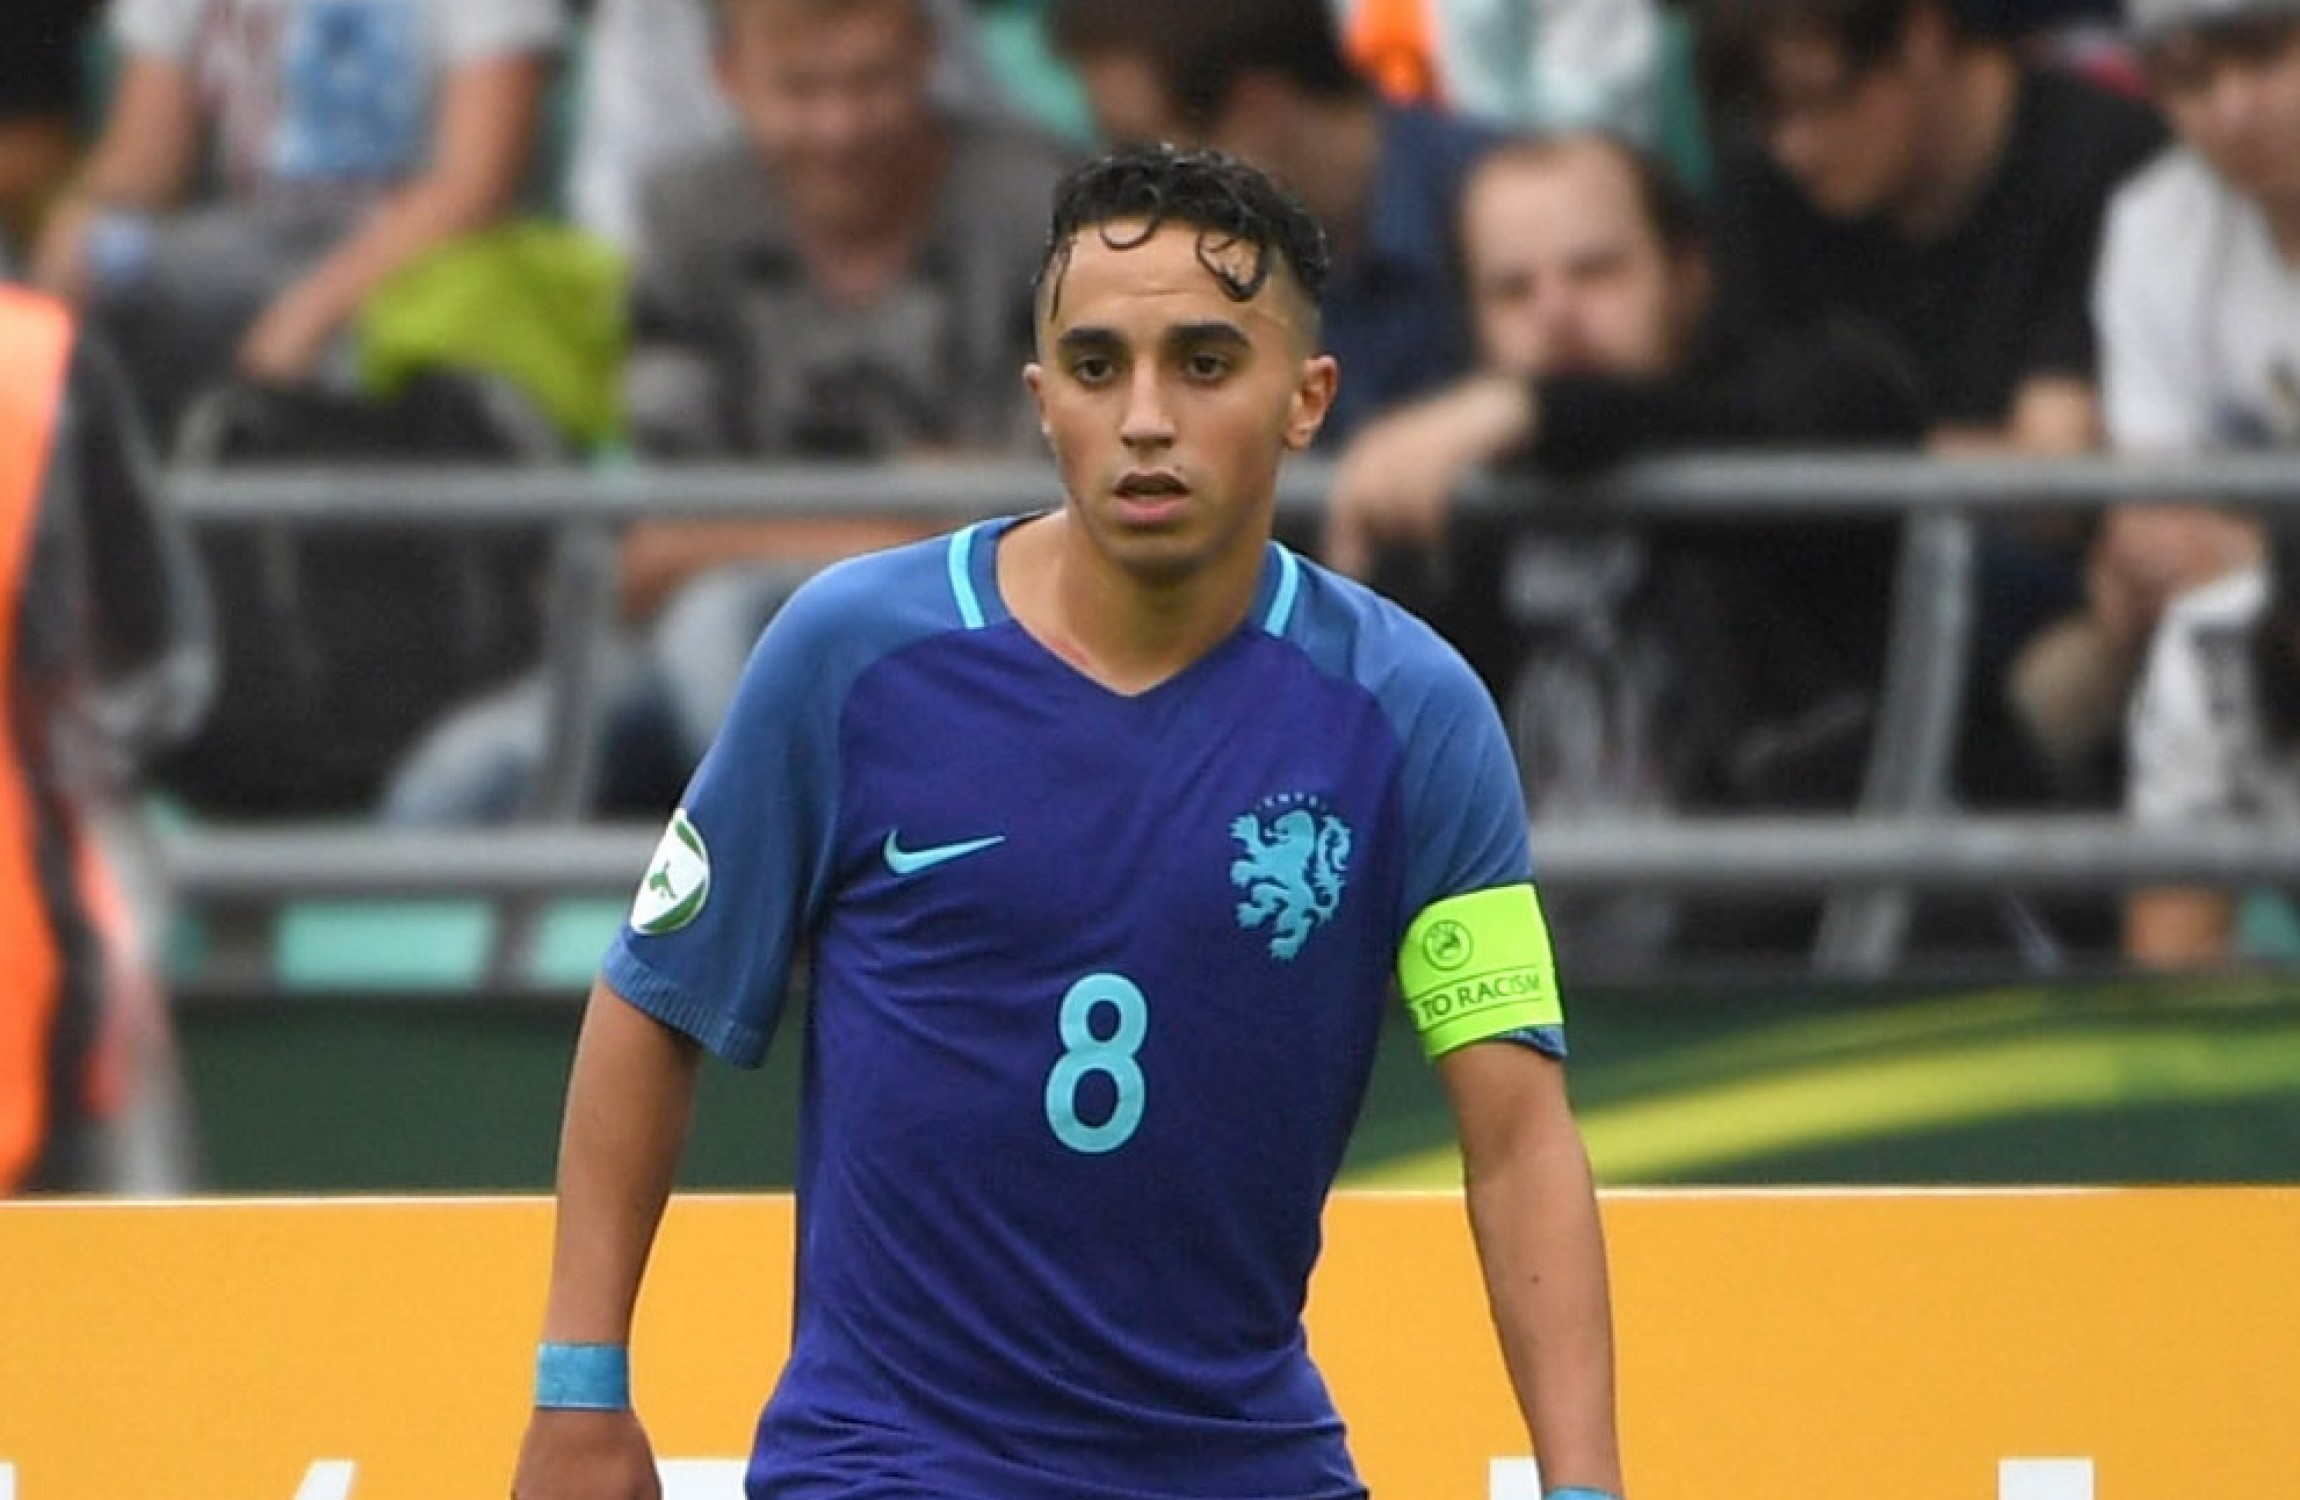 Ajax player Nouri has severe and permanent brain damage